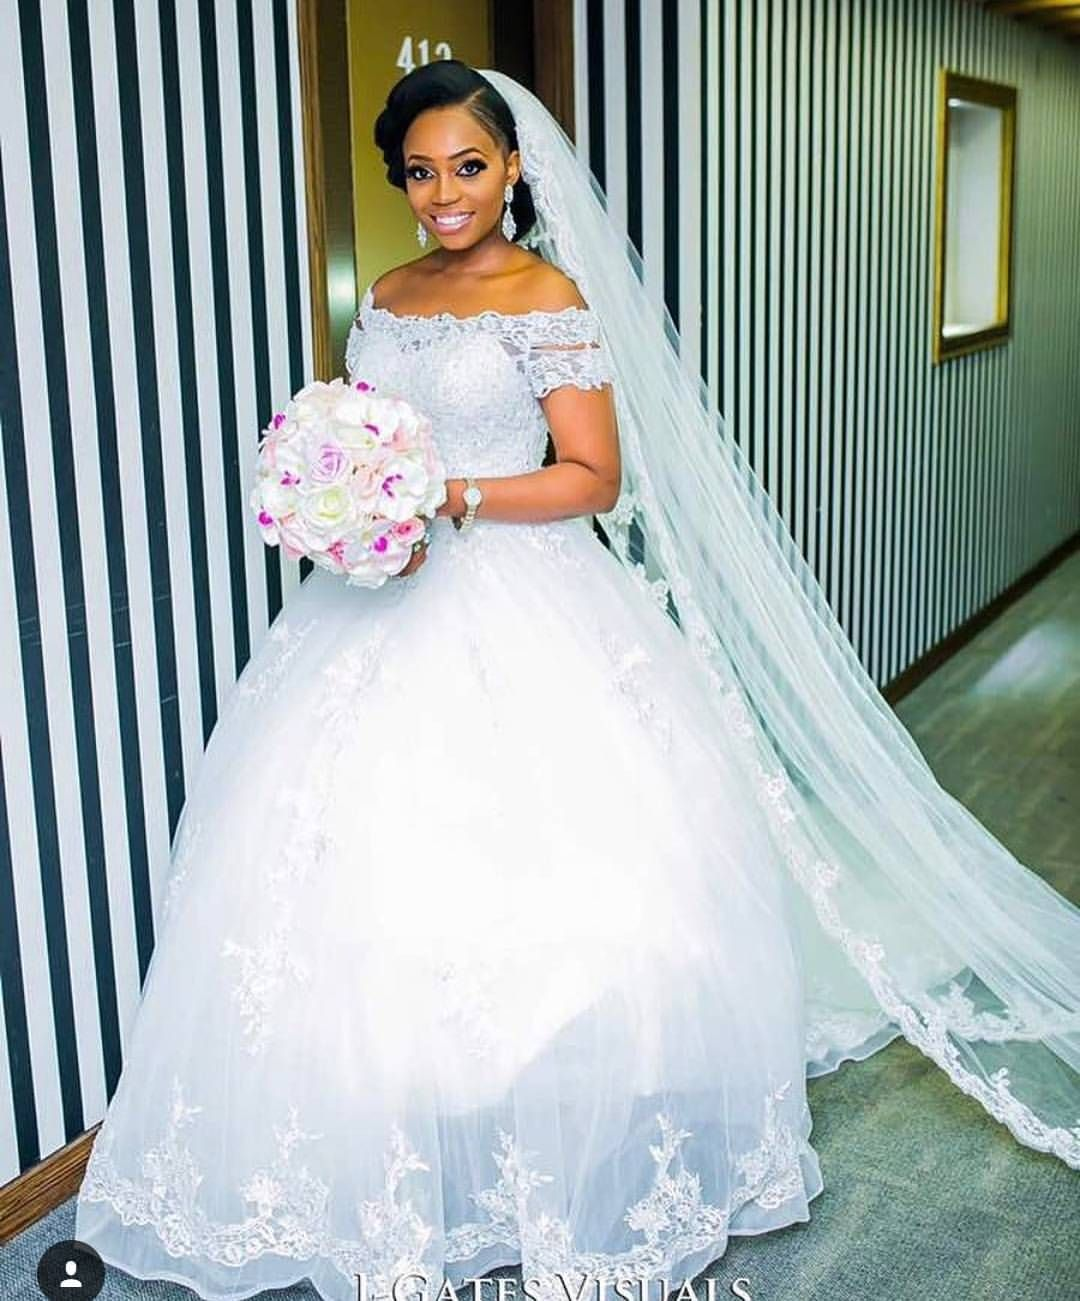 541 Likes 6 Comments Bridesnmore Bridesnmoreikeja On